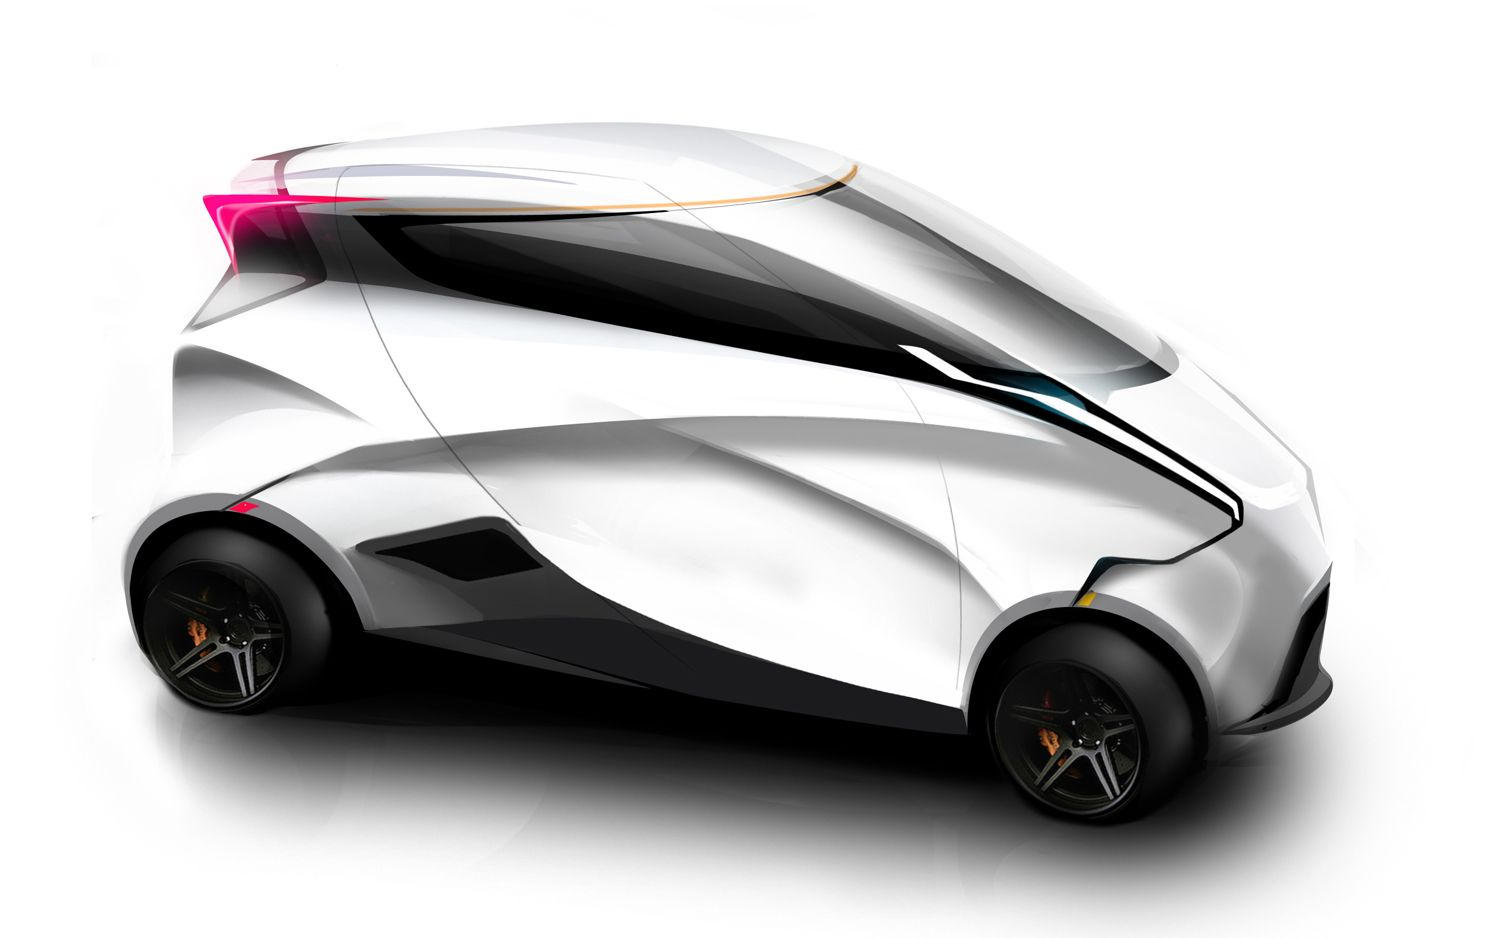 Does The Lotus World Car Concept Preview Their City Car